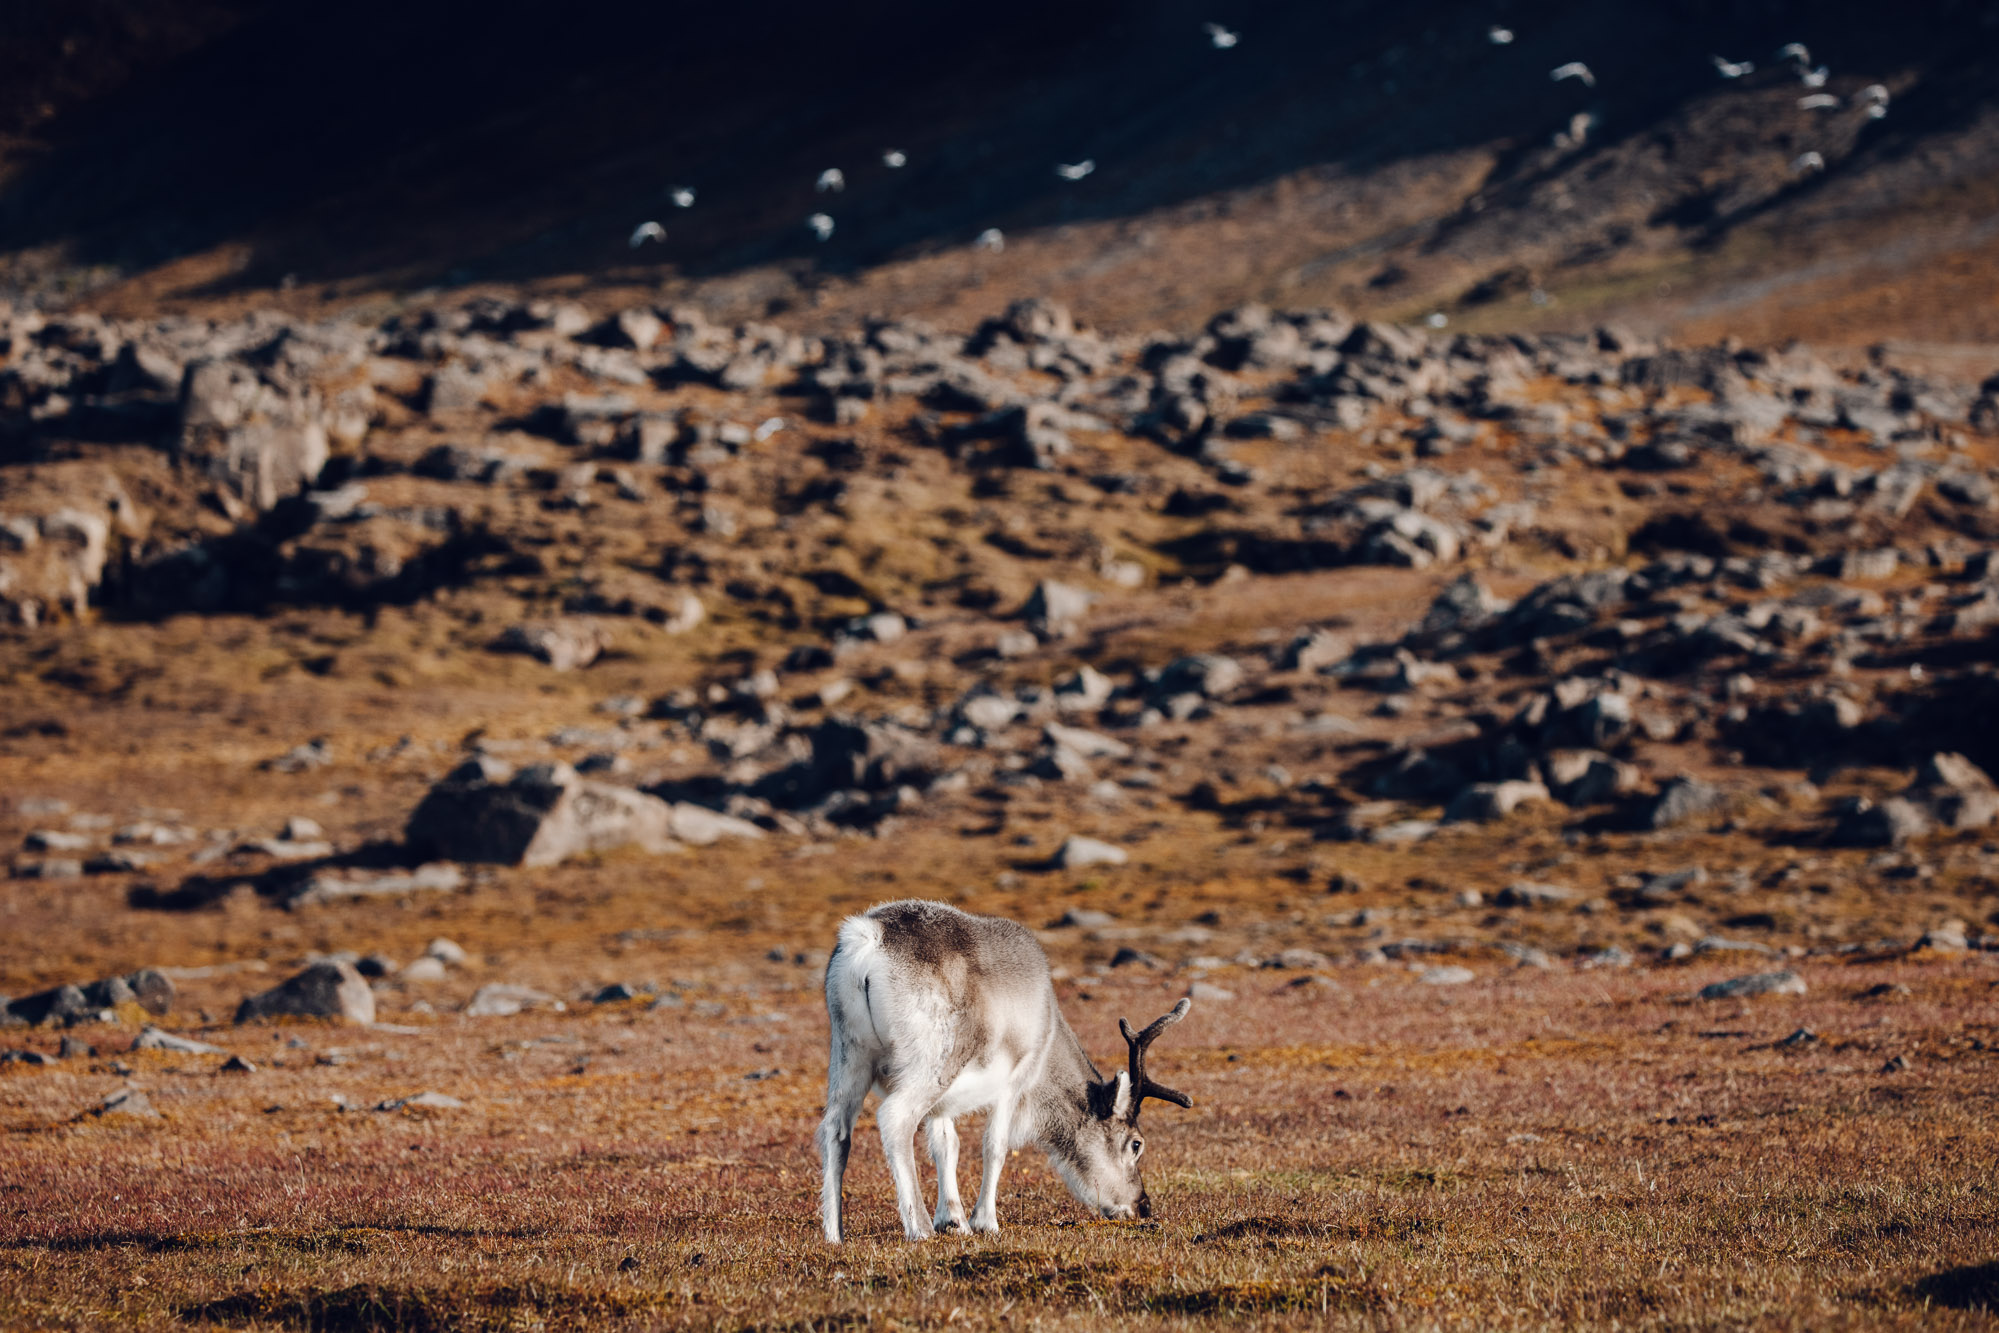 Svalbard reindeer in the valley in Spitsbergen, Svalbard, Norway